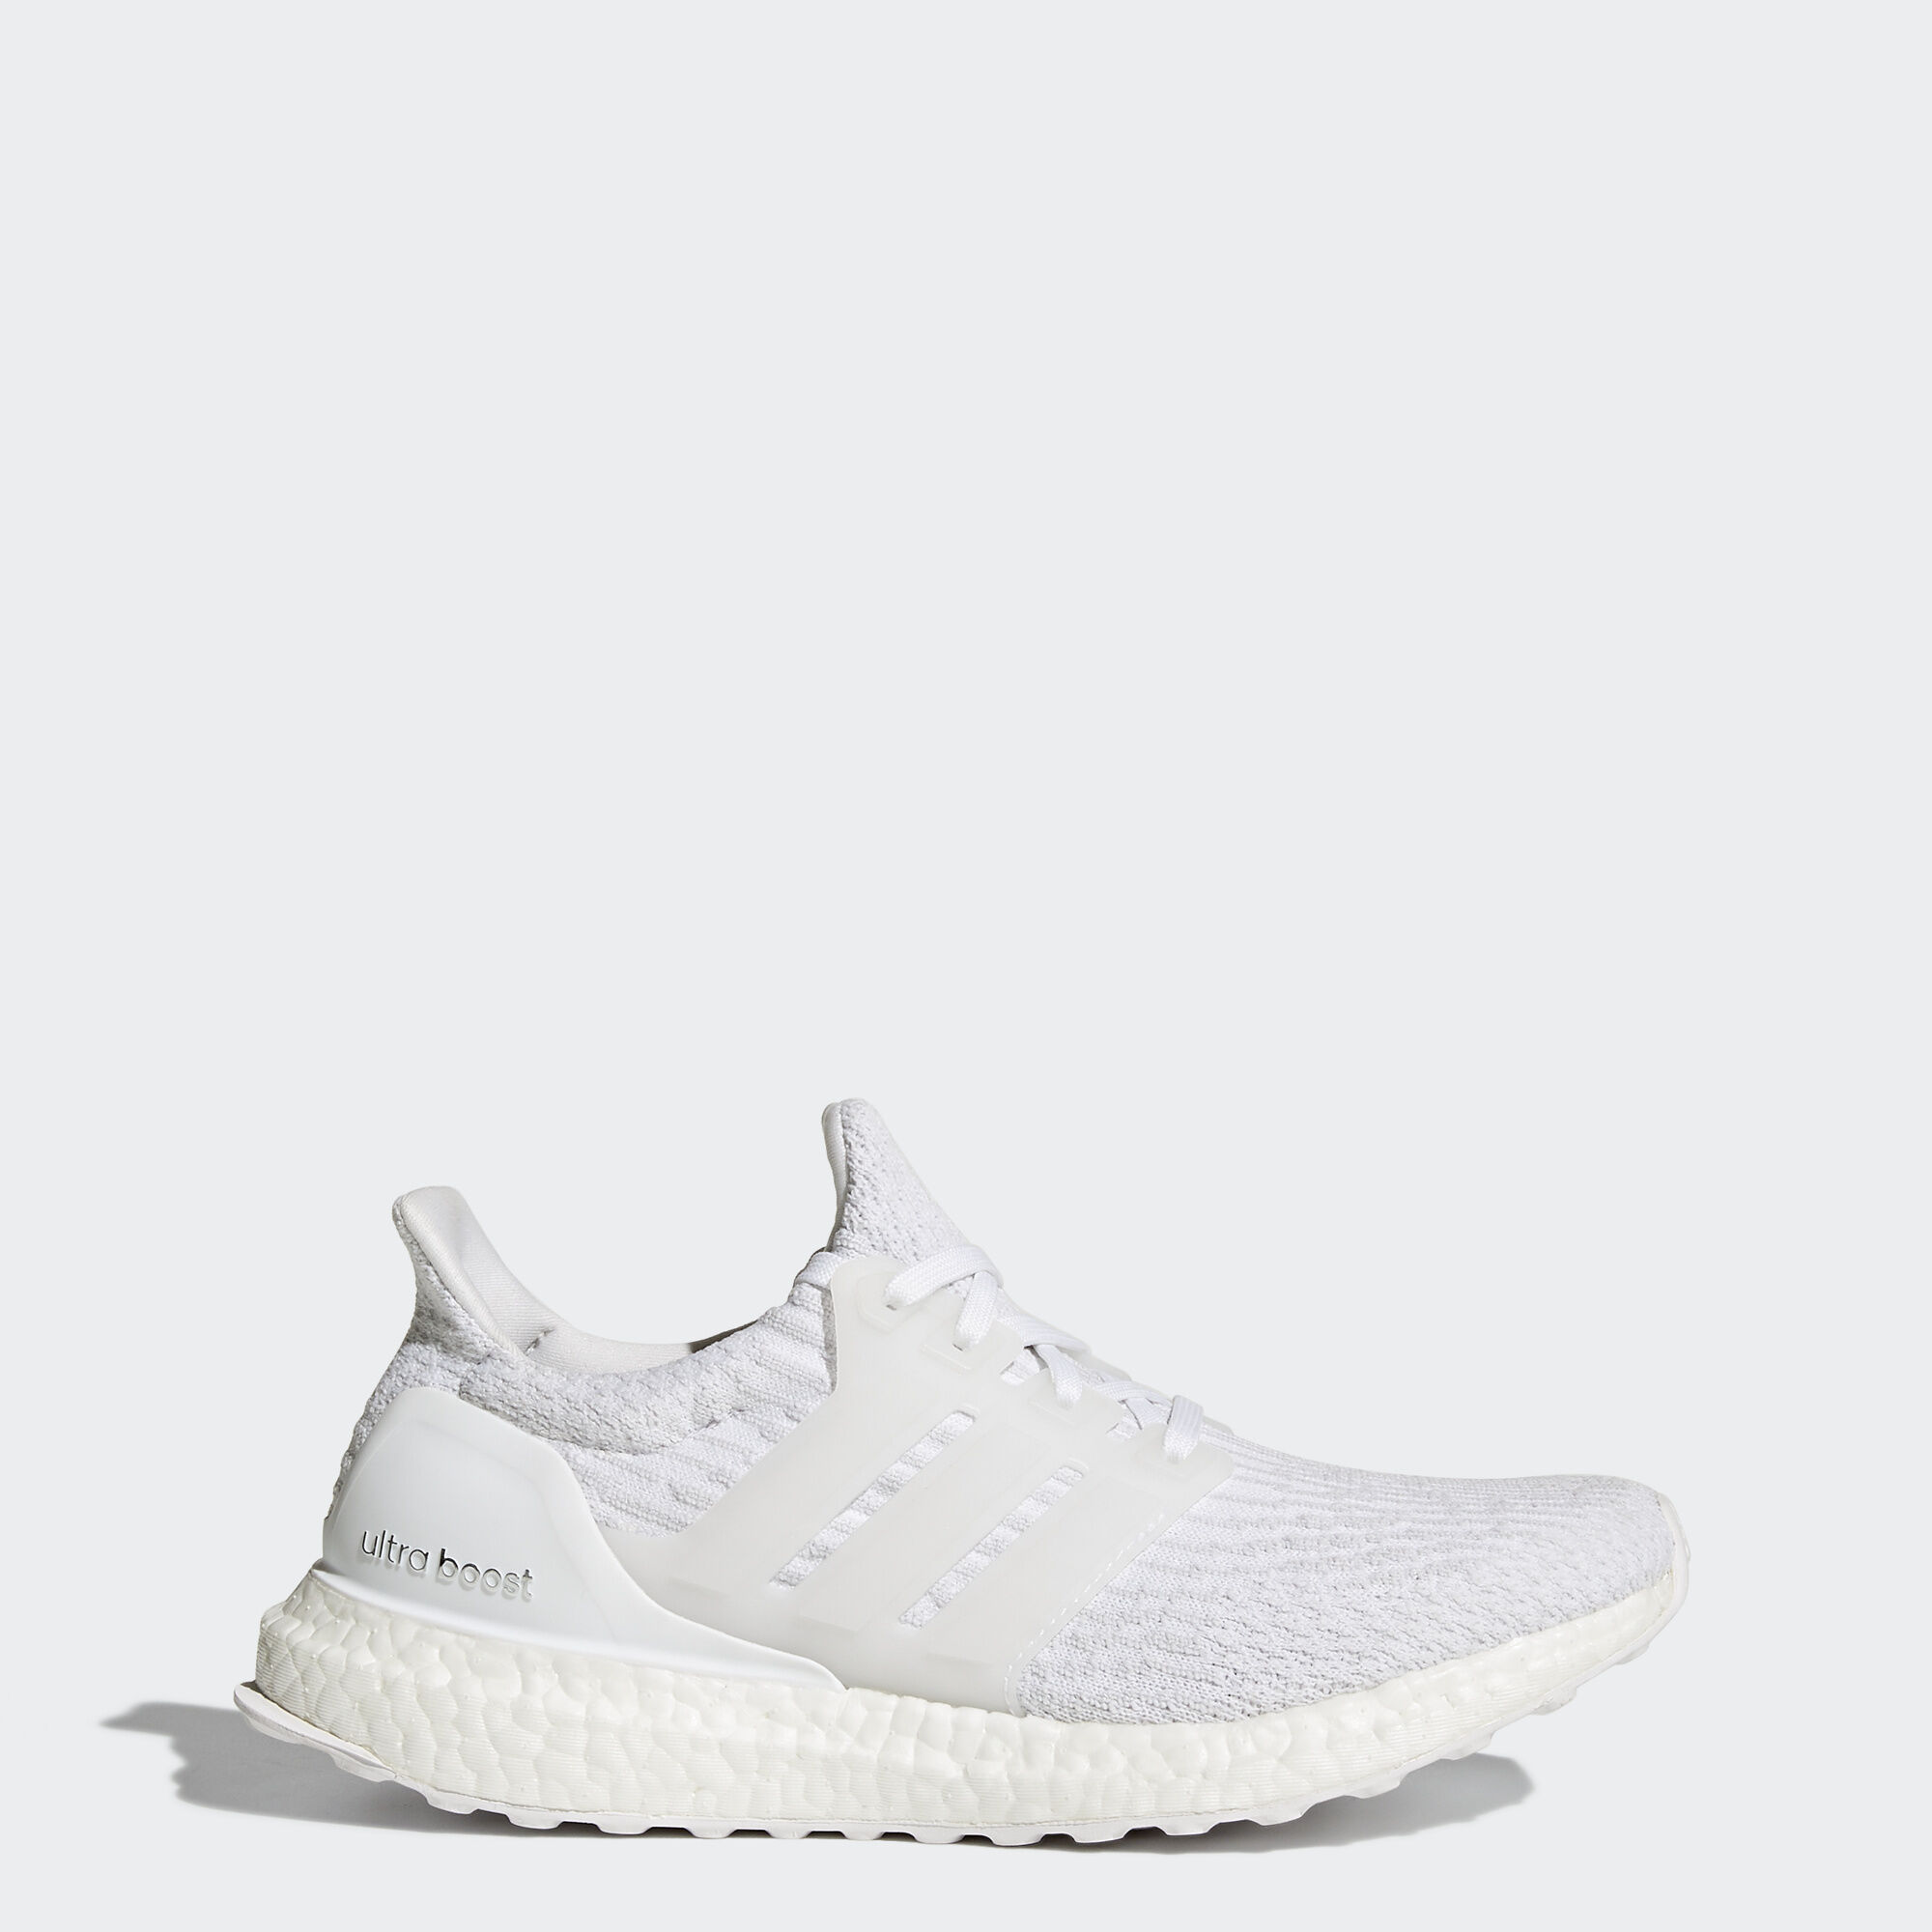 Adidas Ultra Boost White Uk